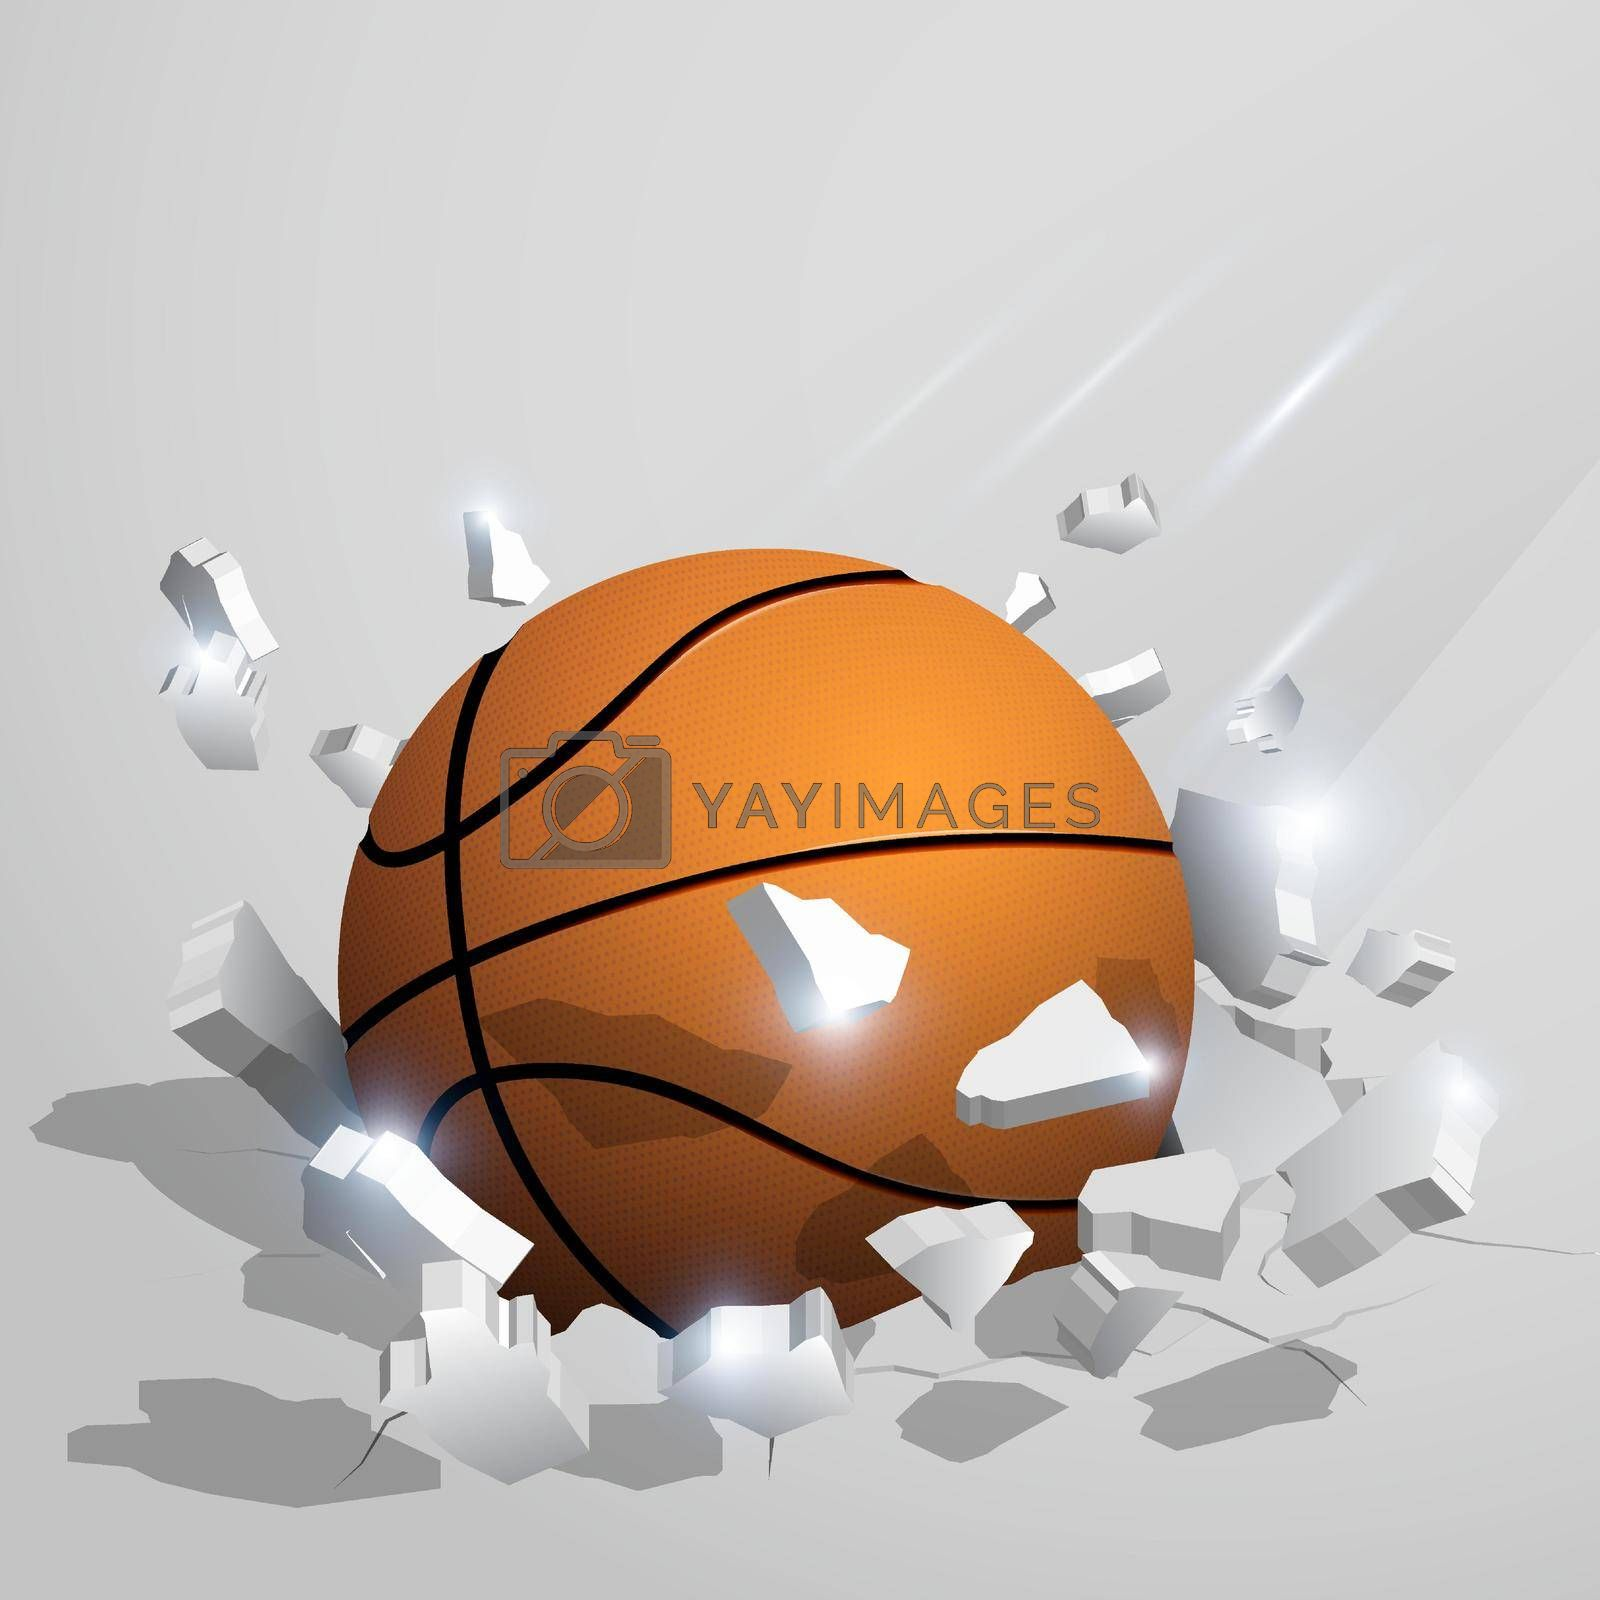 sport orange ball for basketball crashed into the ground at high speed and breaks into shards, cracks after perfect hit. Inflicting heavy damage. Vector